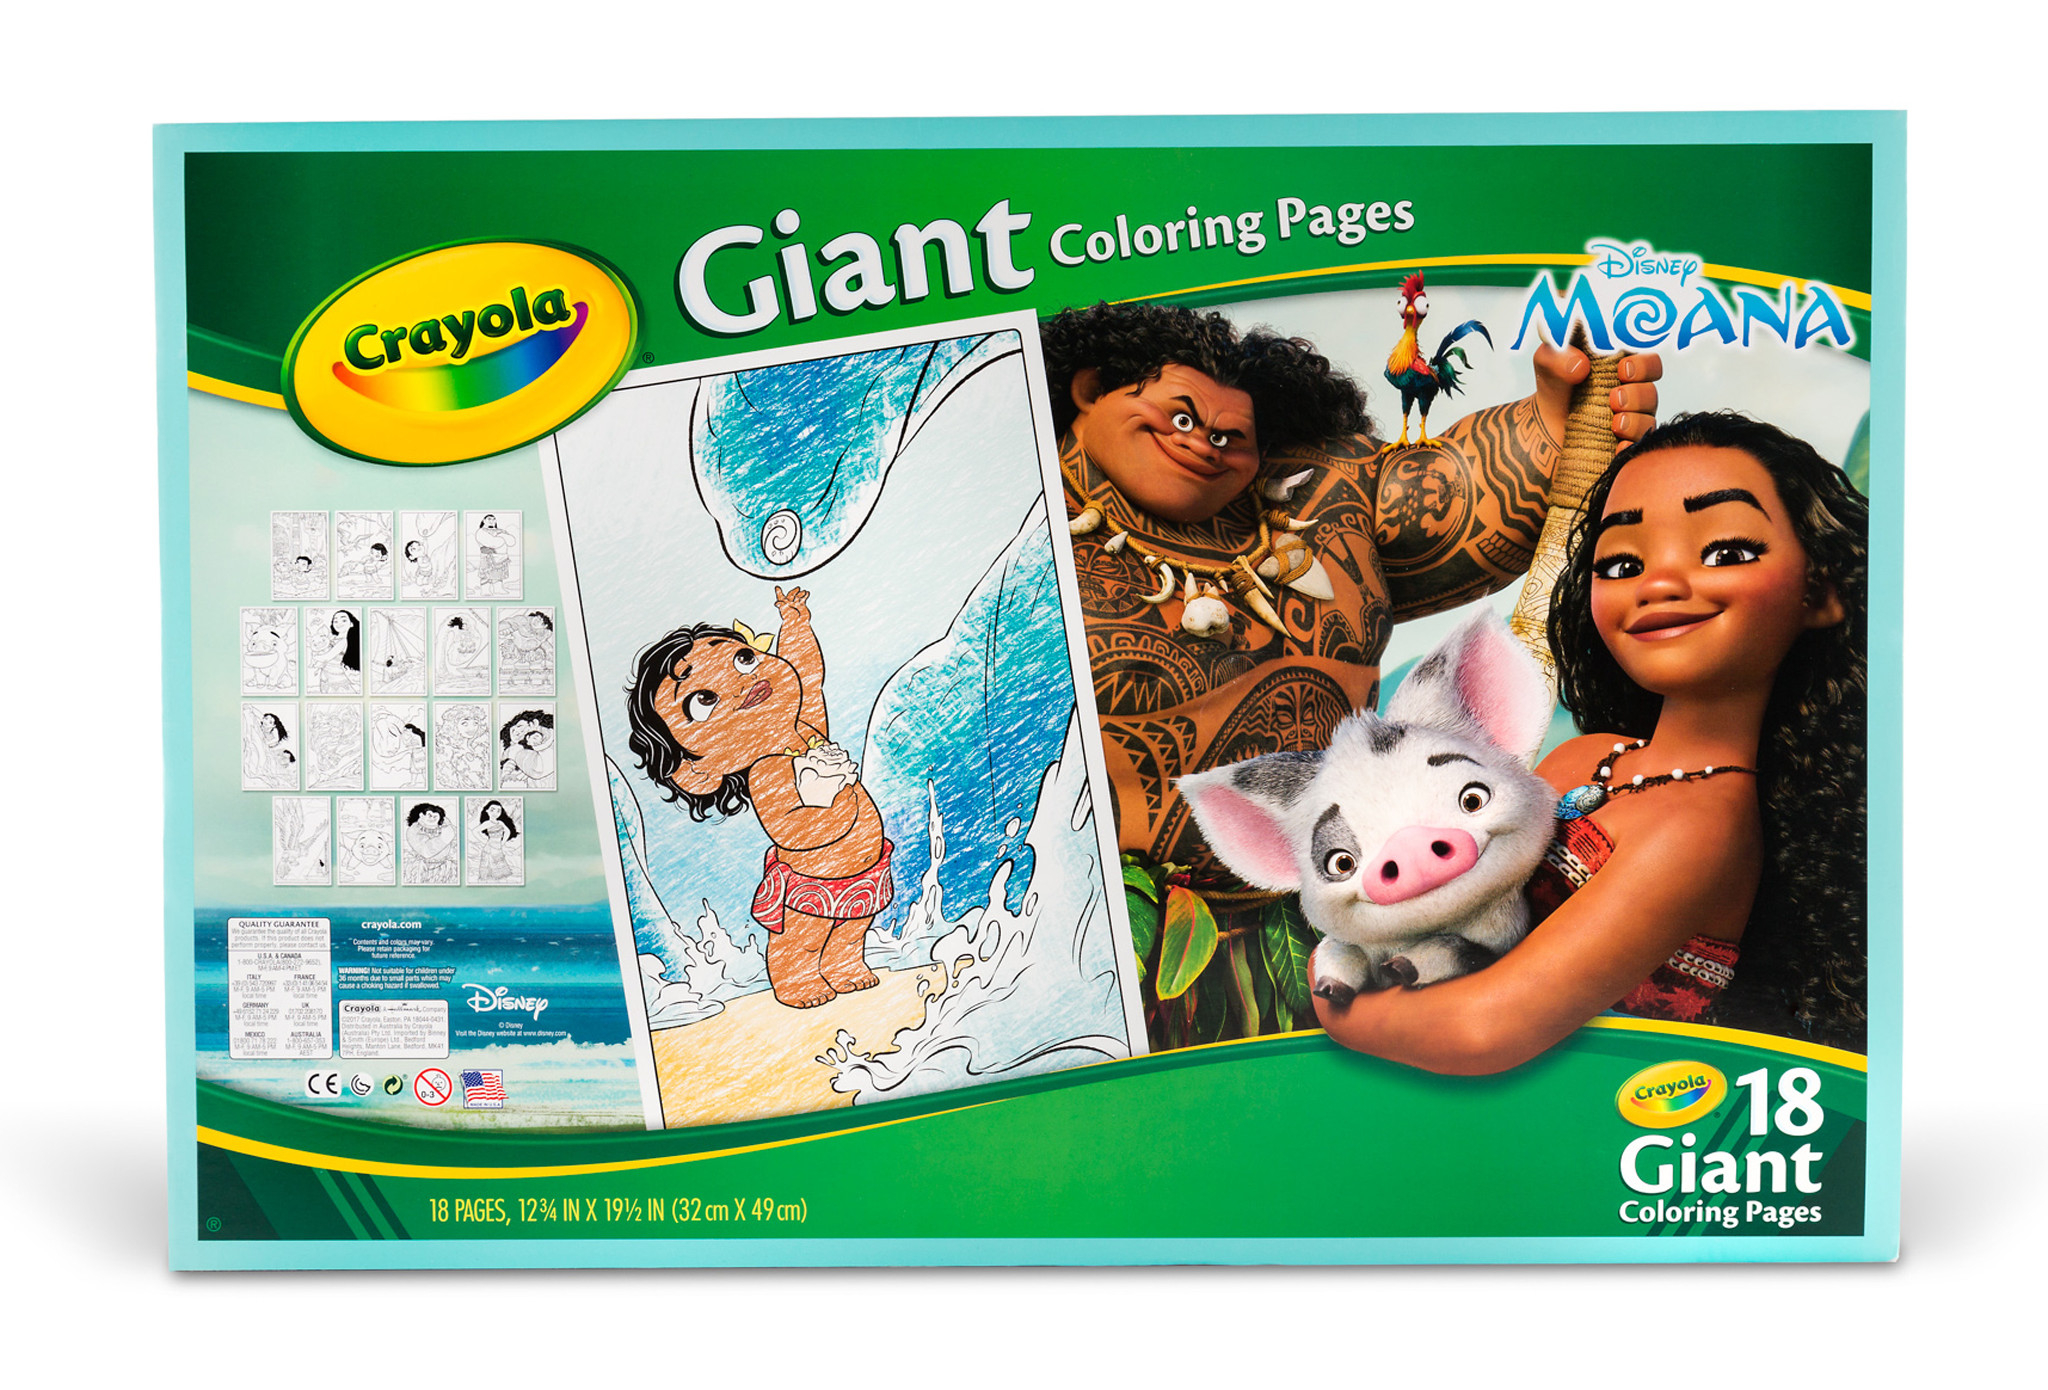 Crayola Giant Coloring Pages Crayola Giant Coloring Pages Featuring Disneys Moana Walmart